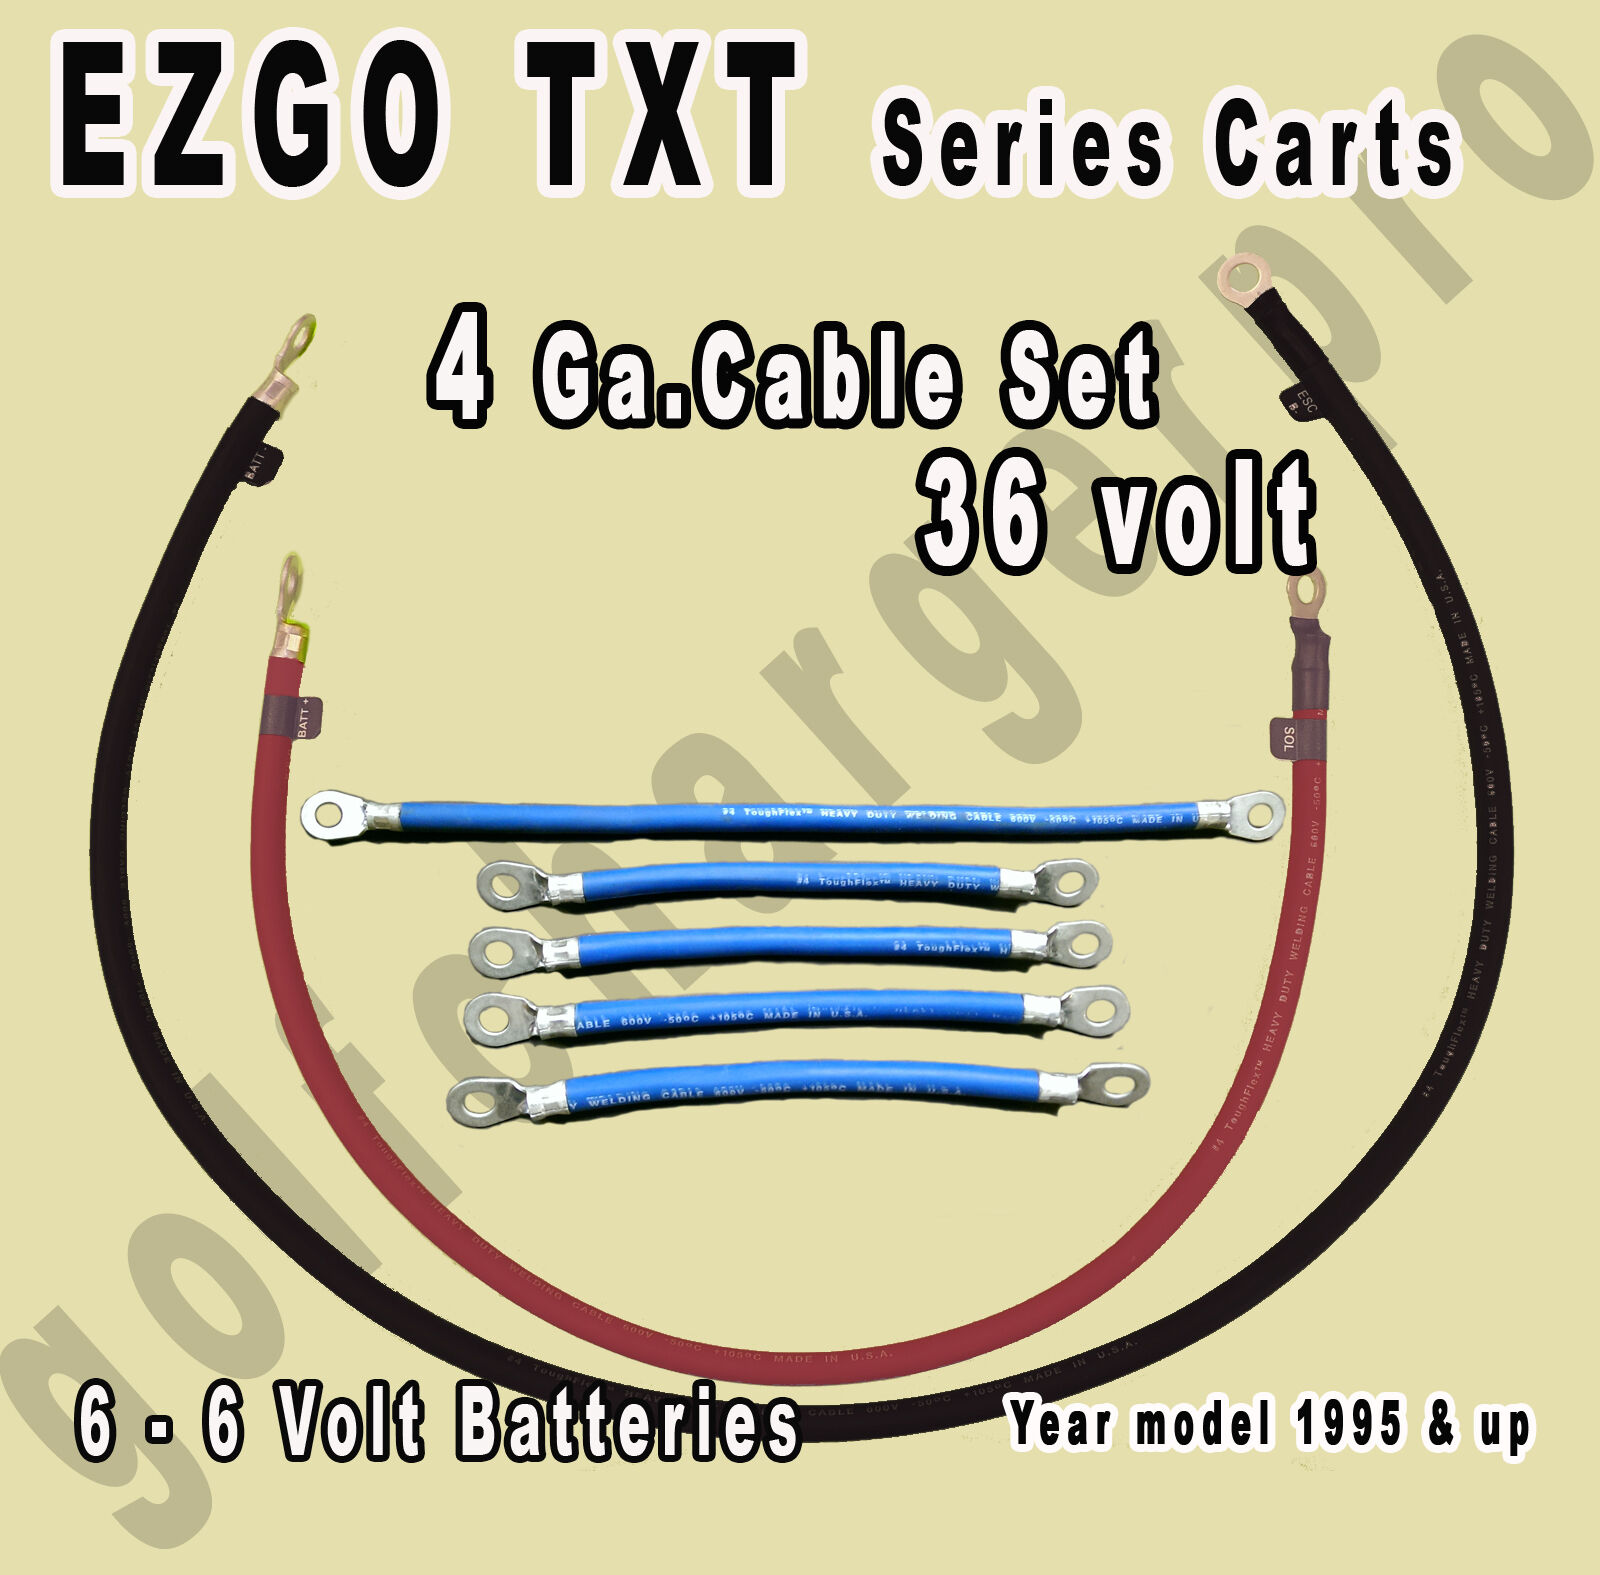 Ezgo Txt Battery Cable Schematic Electrical Wiring Diagrams 2000 Diagram Golf Cart 36 Volt 4 Gauge Heavy Duty